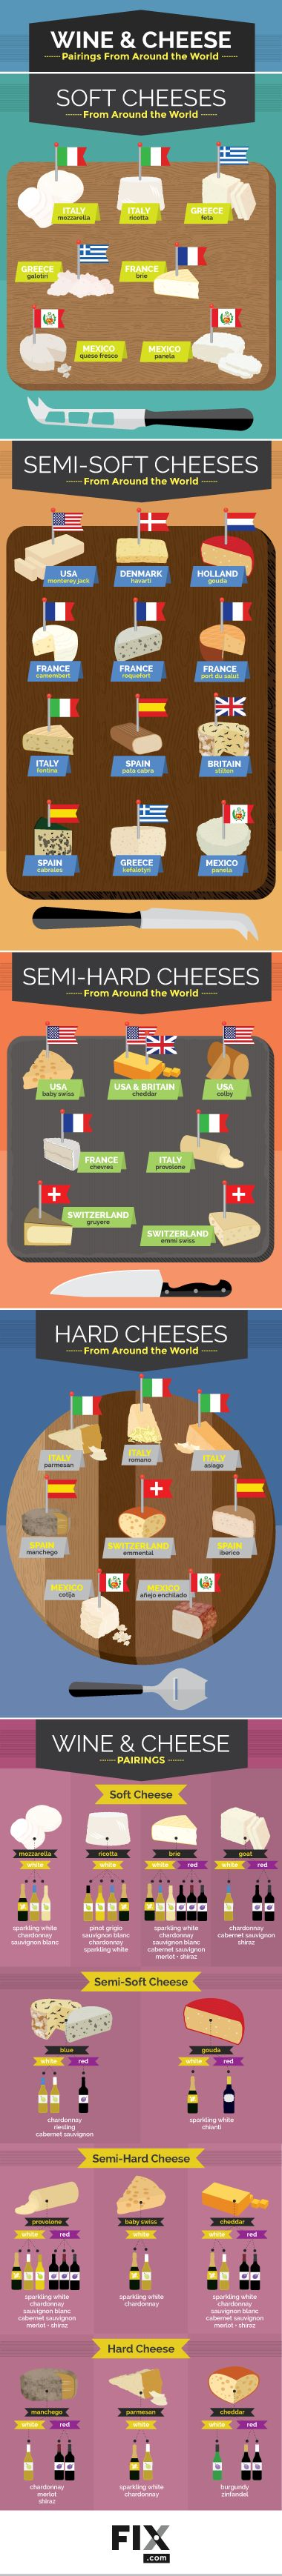 Wine and Cheese Pairings from Around the World | Fix.com